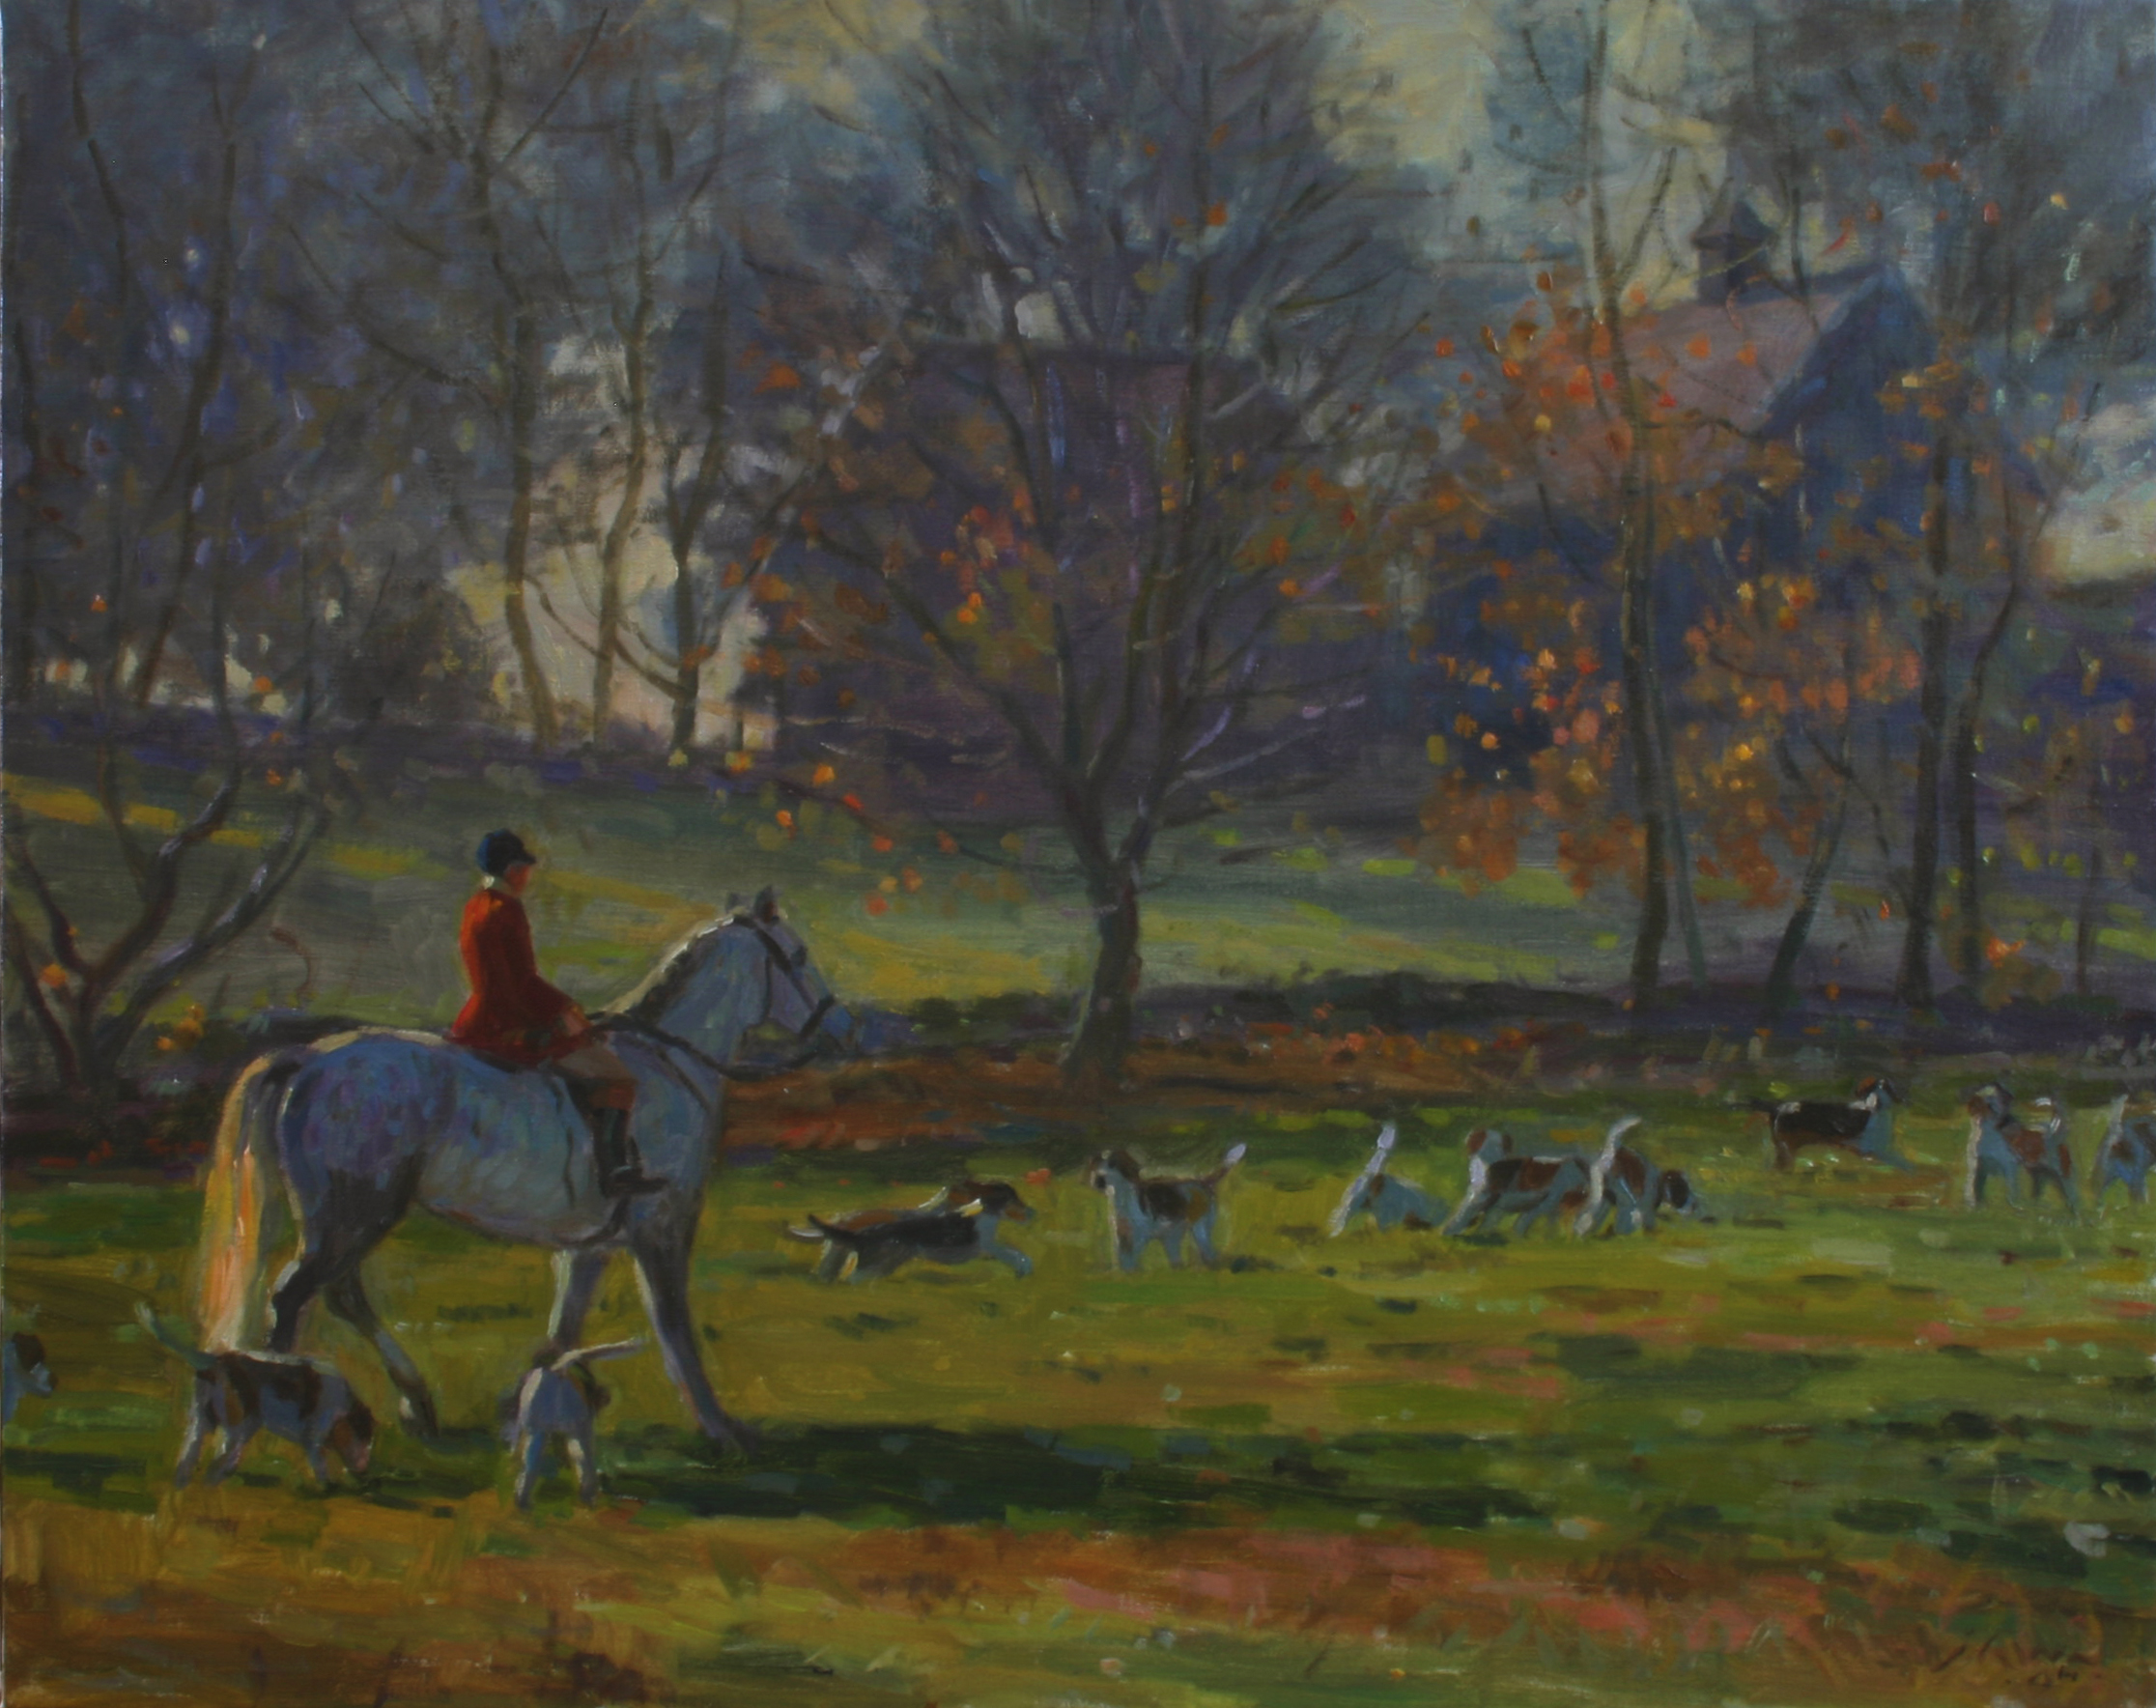 Huntsman with Hounds, Oil on canvas, 24 x30 inches. [sold]